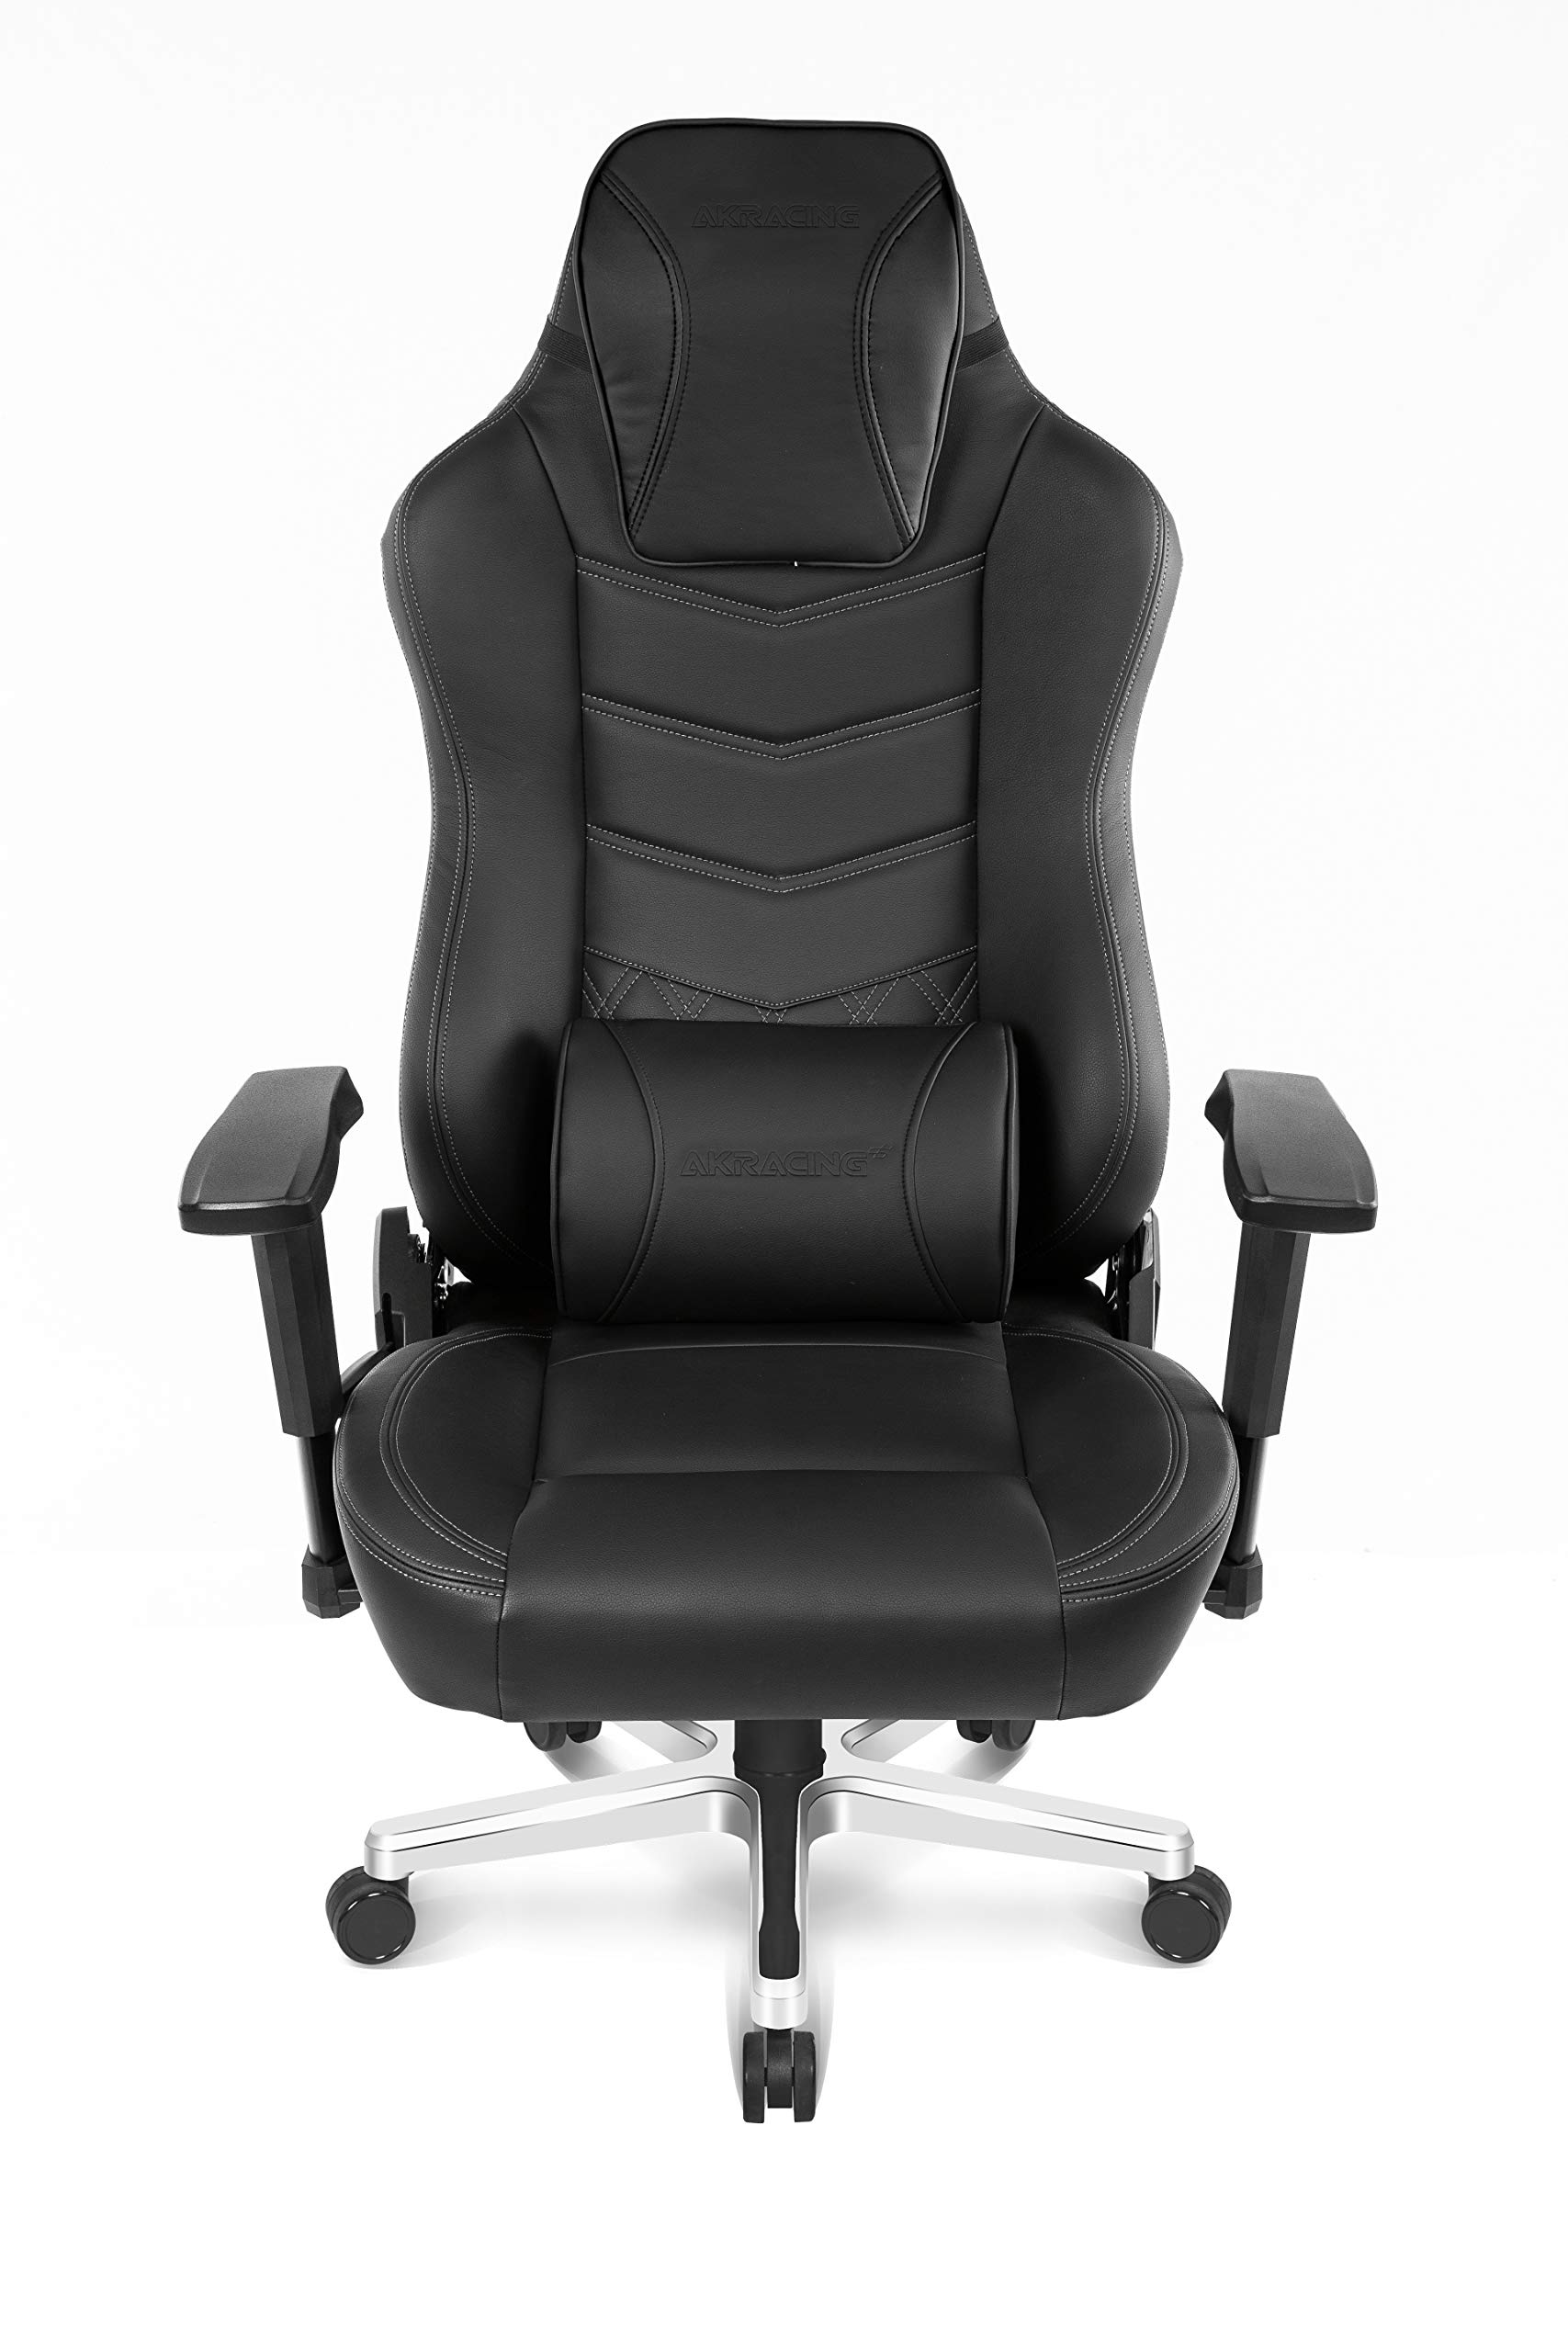 AKRacing Office Series Onyx Deluxe Executive Real Leather Desk Chair with High Backrest, Recliner, Swivel, Tilt, Rocker & Seat Height Adjustment Mechanisms, 5/10 Warranty - Black by AKRacing